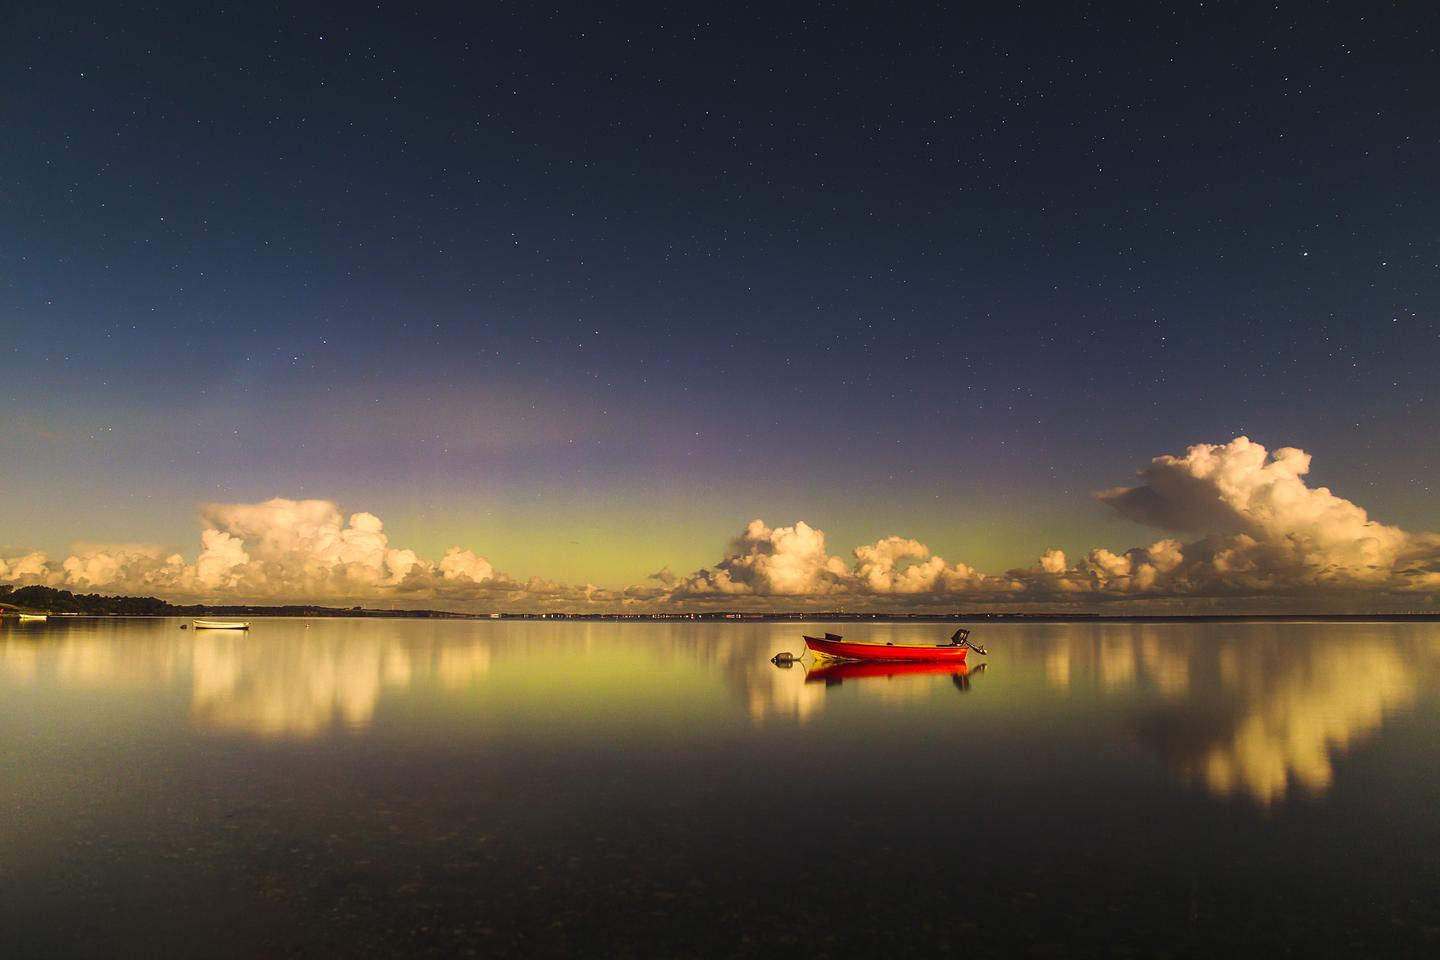 The Return of Green Lady, Highly Commended in the Aurorae category. When the photographer arrived at the Limfjord, he wasn't expecting to capture any aurora due to the strong light from the full Moon but he was pleasantly surprised when a green cast appeared on the camera screen. Nykøbing Mors, Nordjylland, Denmark